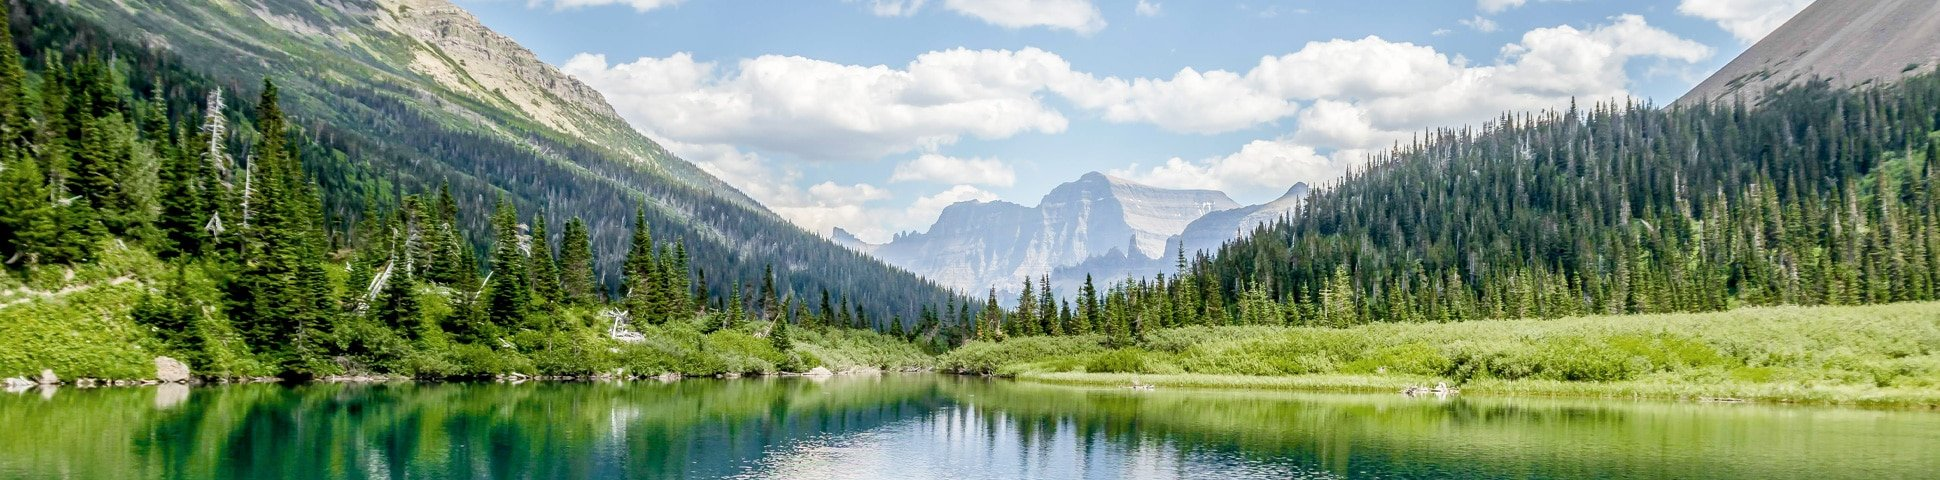 Boulder Pass Backpacking Trail in Glacier National Park has some of the best views of Montana